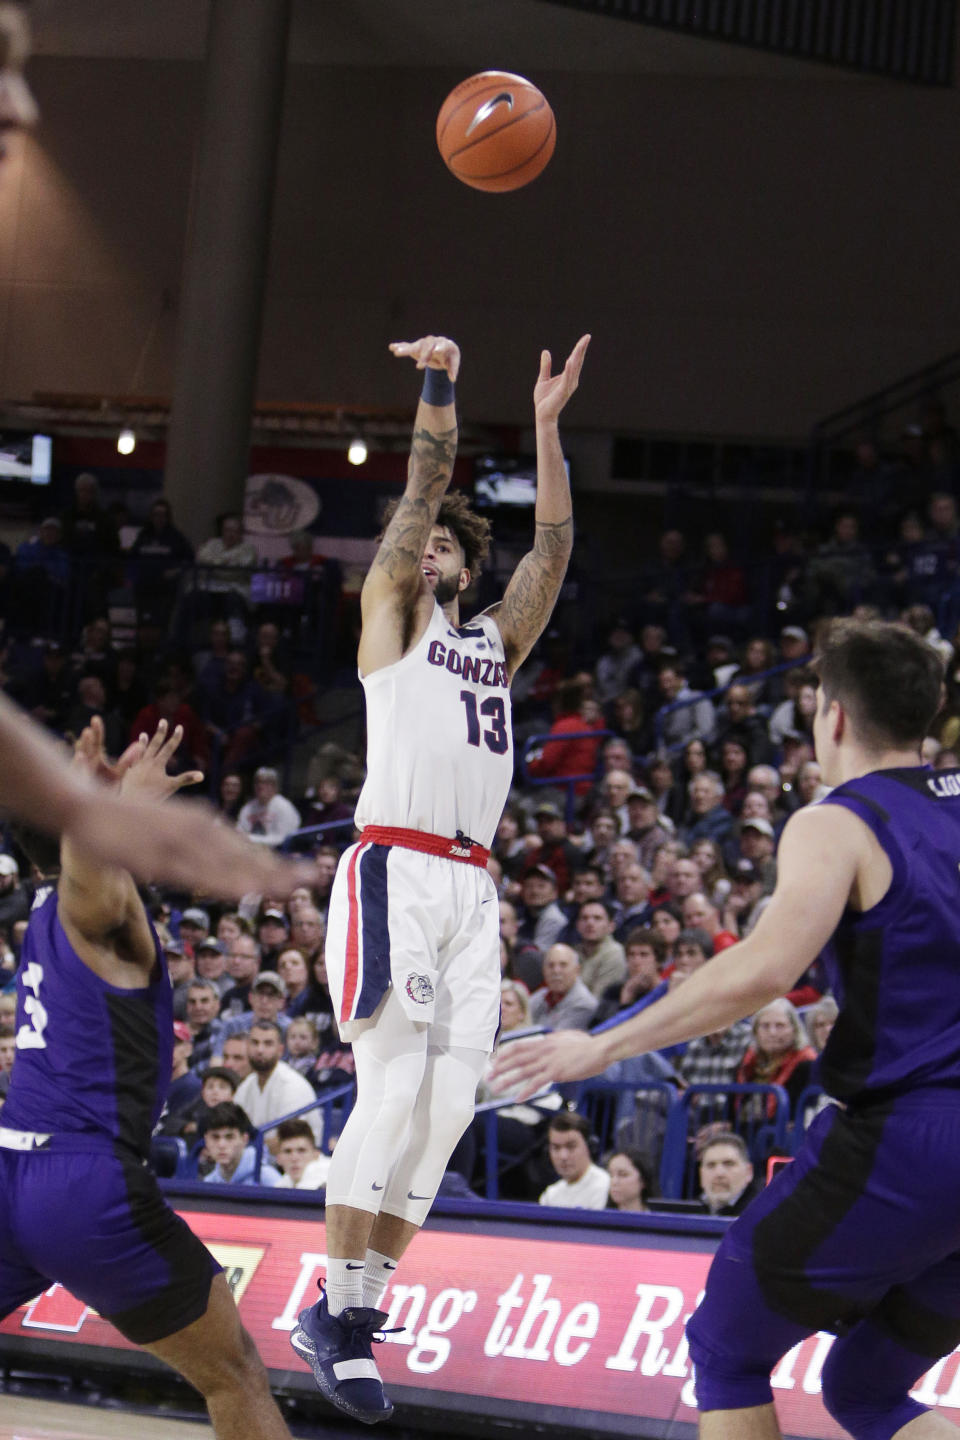 Gonzaga guard Josh Perkins (13) shoots in front of North Alabama guards Jamari Blackmon, left, and Aleksa Matic during the first half of an NCAA college basketball game in Spokane, Wash., Friday, Dec. 28, 2018. (AP Photo/Young Kwak)